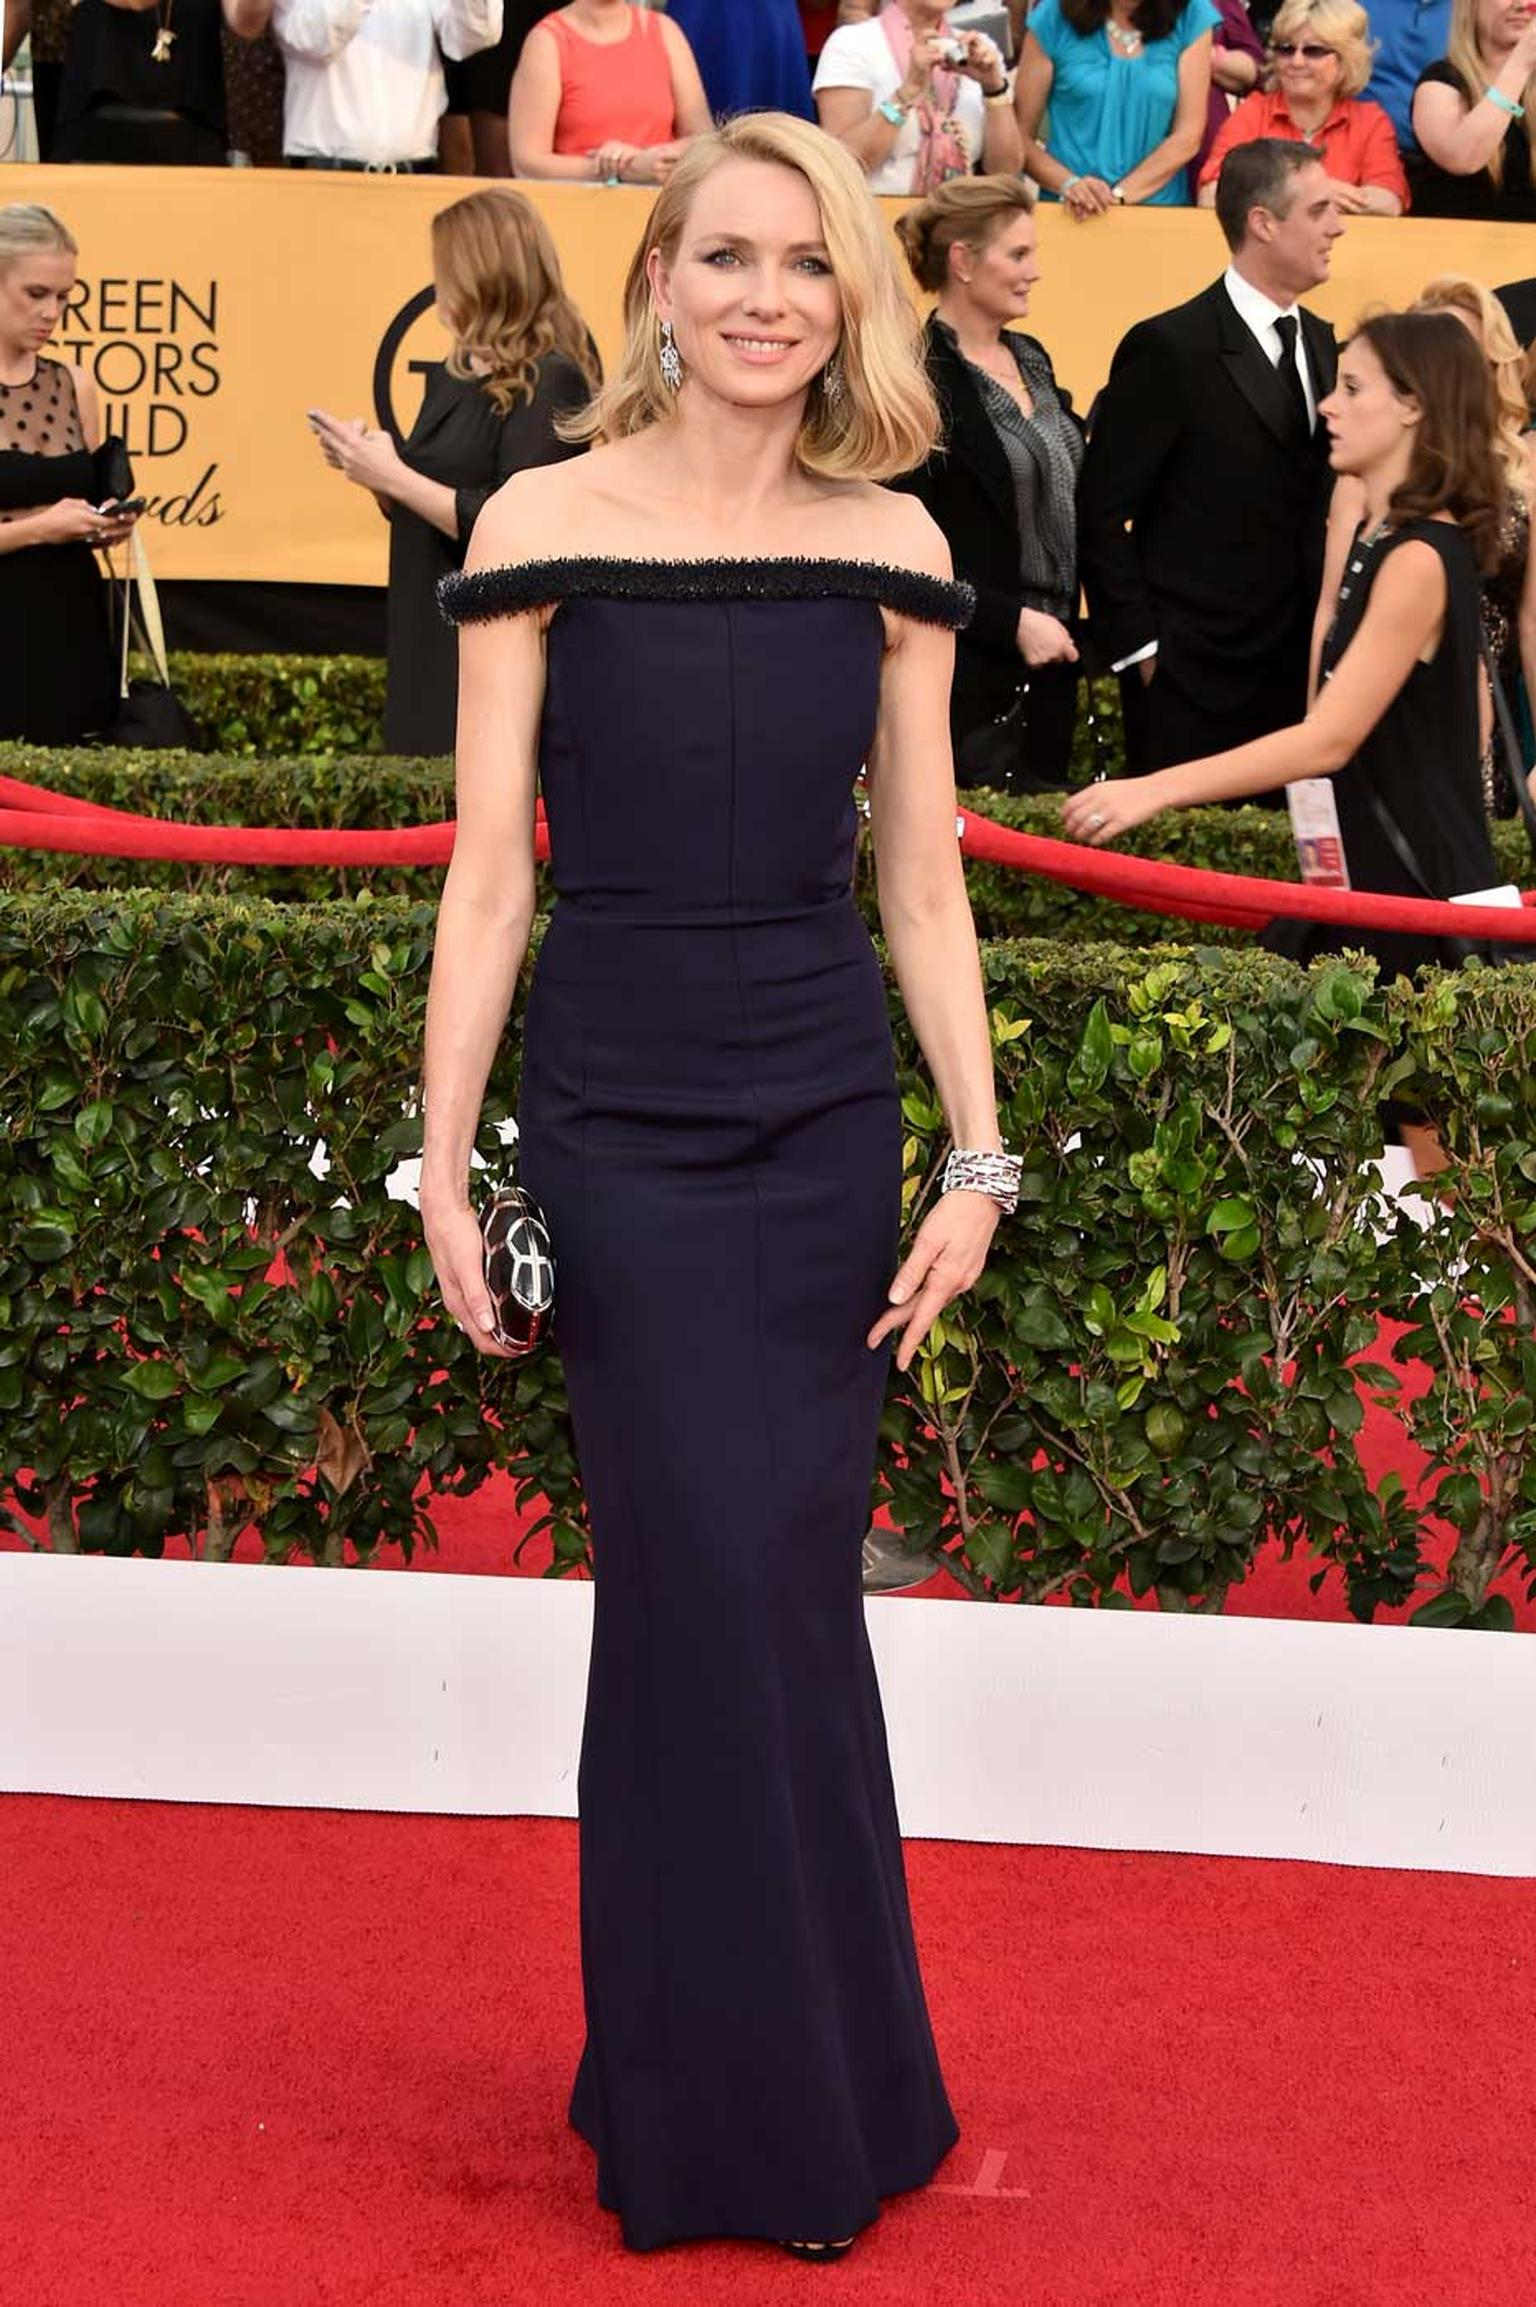 Naomi Watts was a shining star in Bulgari jewelry from the Serpenti collection at the Screen Actors Guild Awards 2015. (Kevin Mazur/Getty Images).